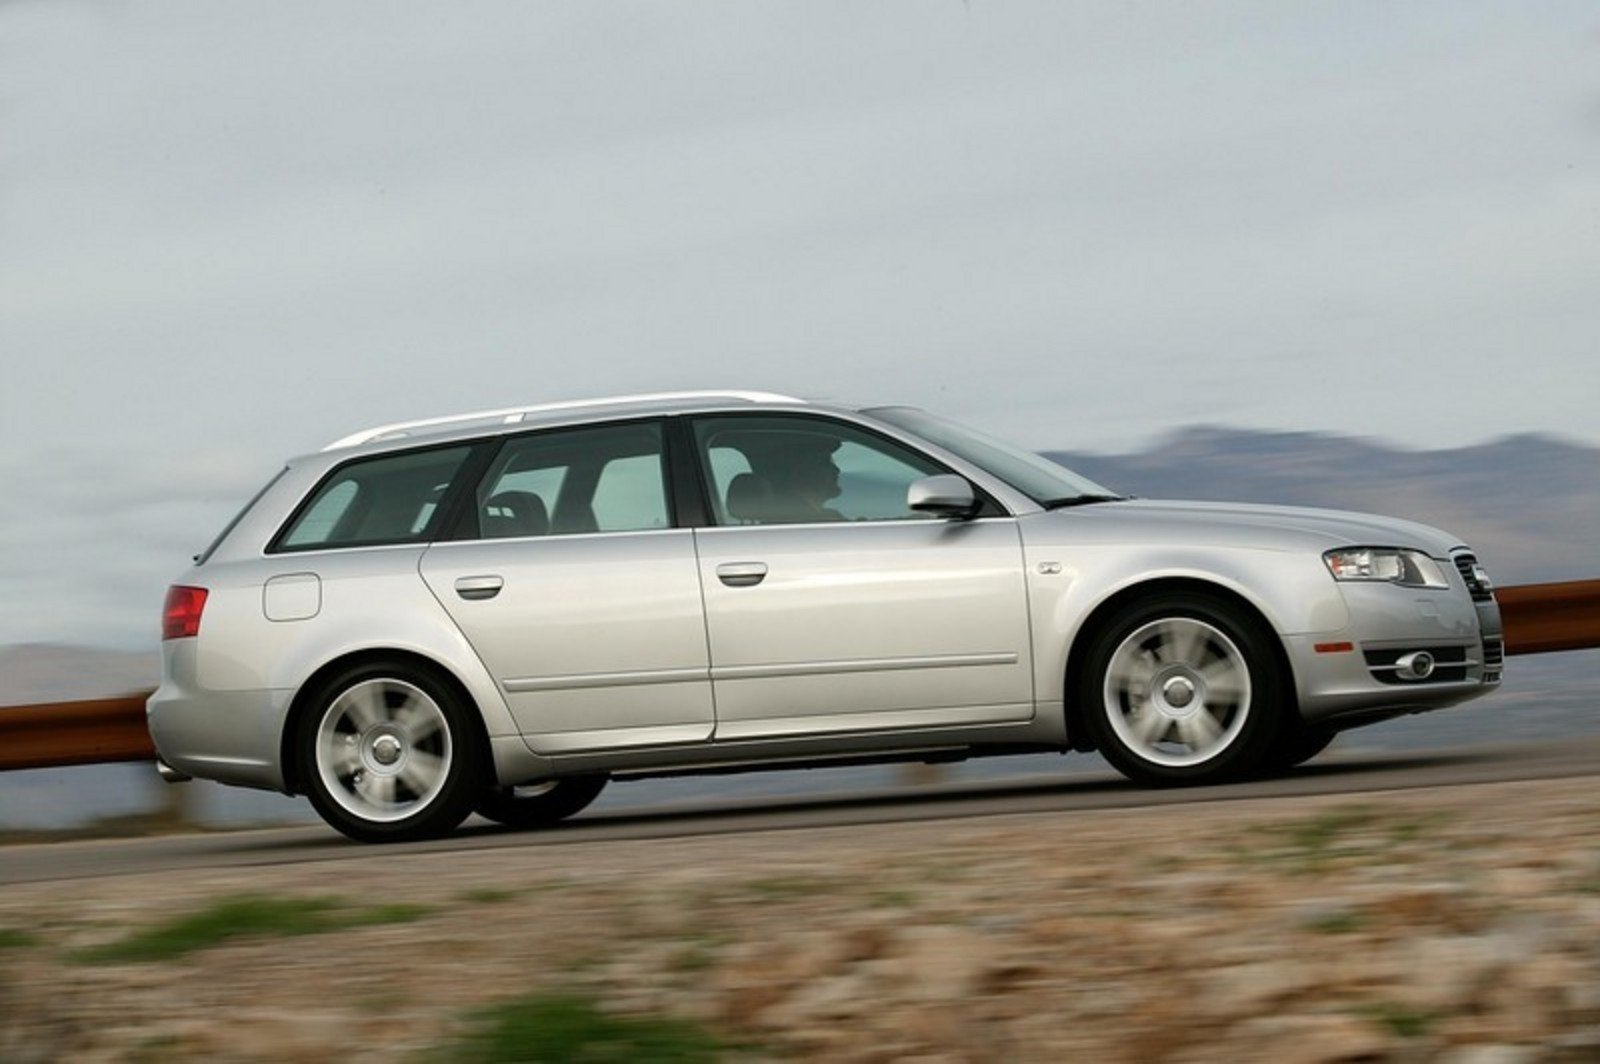 2006 audi a4 wagon picture 45152 car review top speed. Black Bedroom Furniture Sets. Home Design Ideas